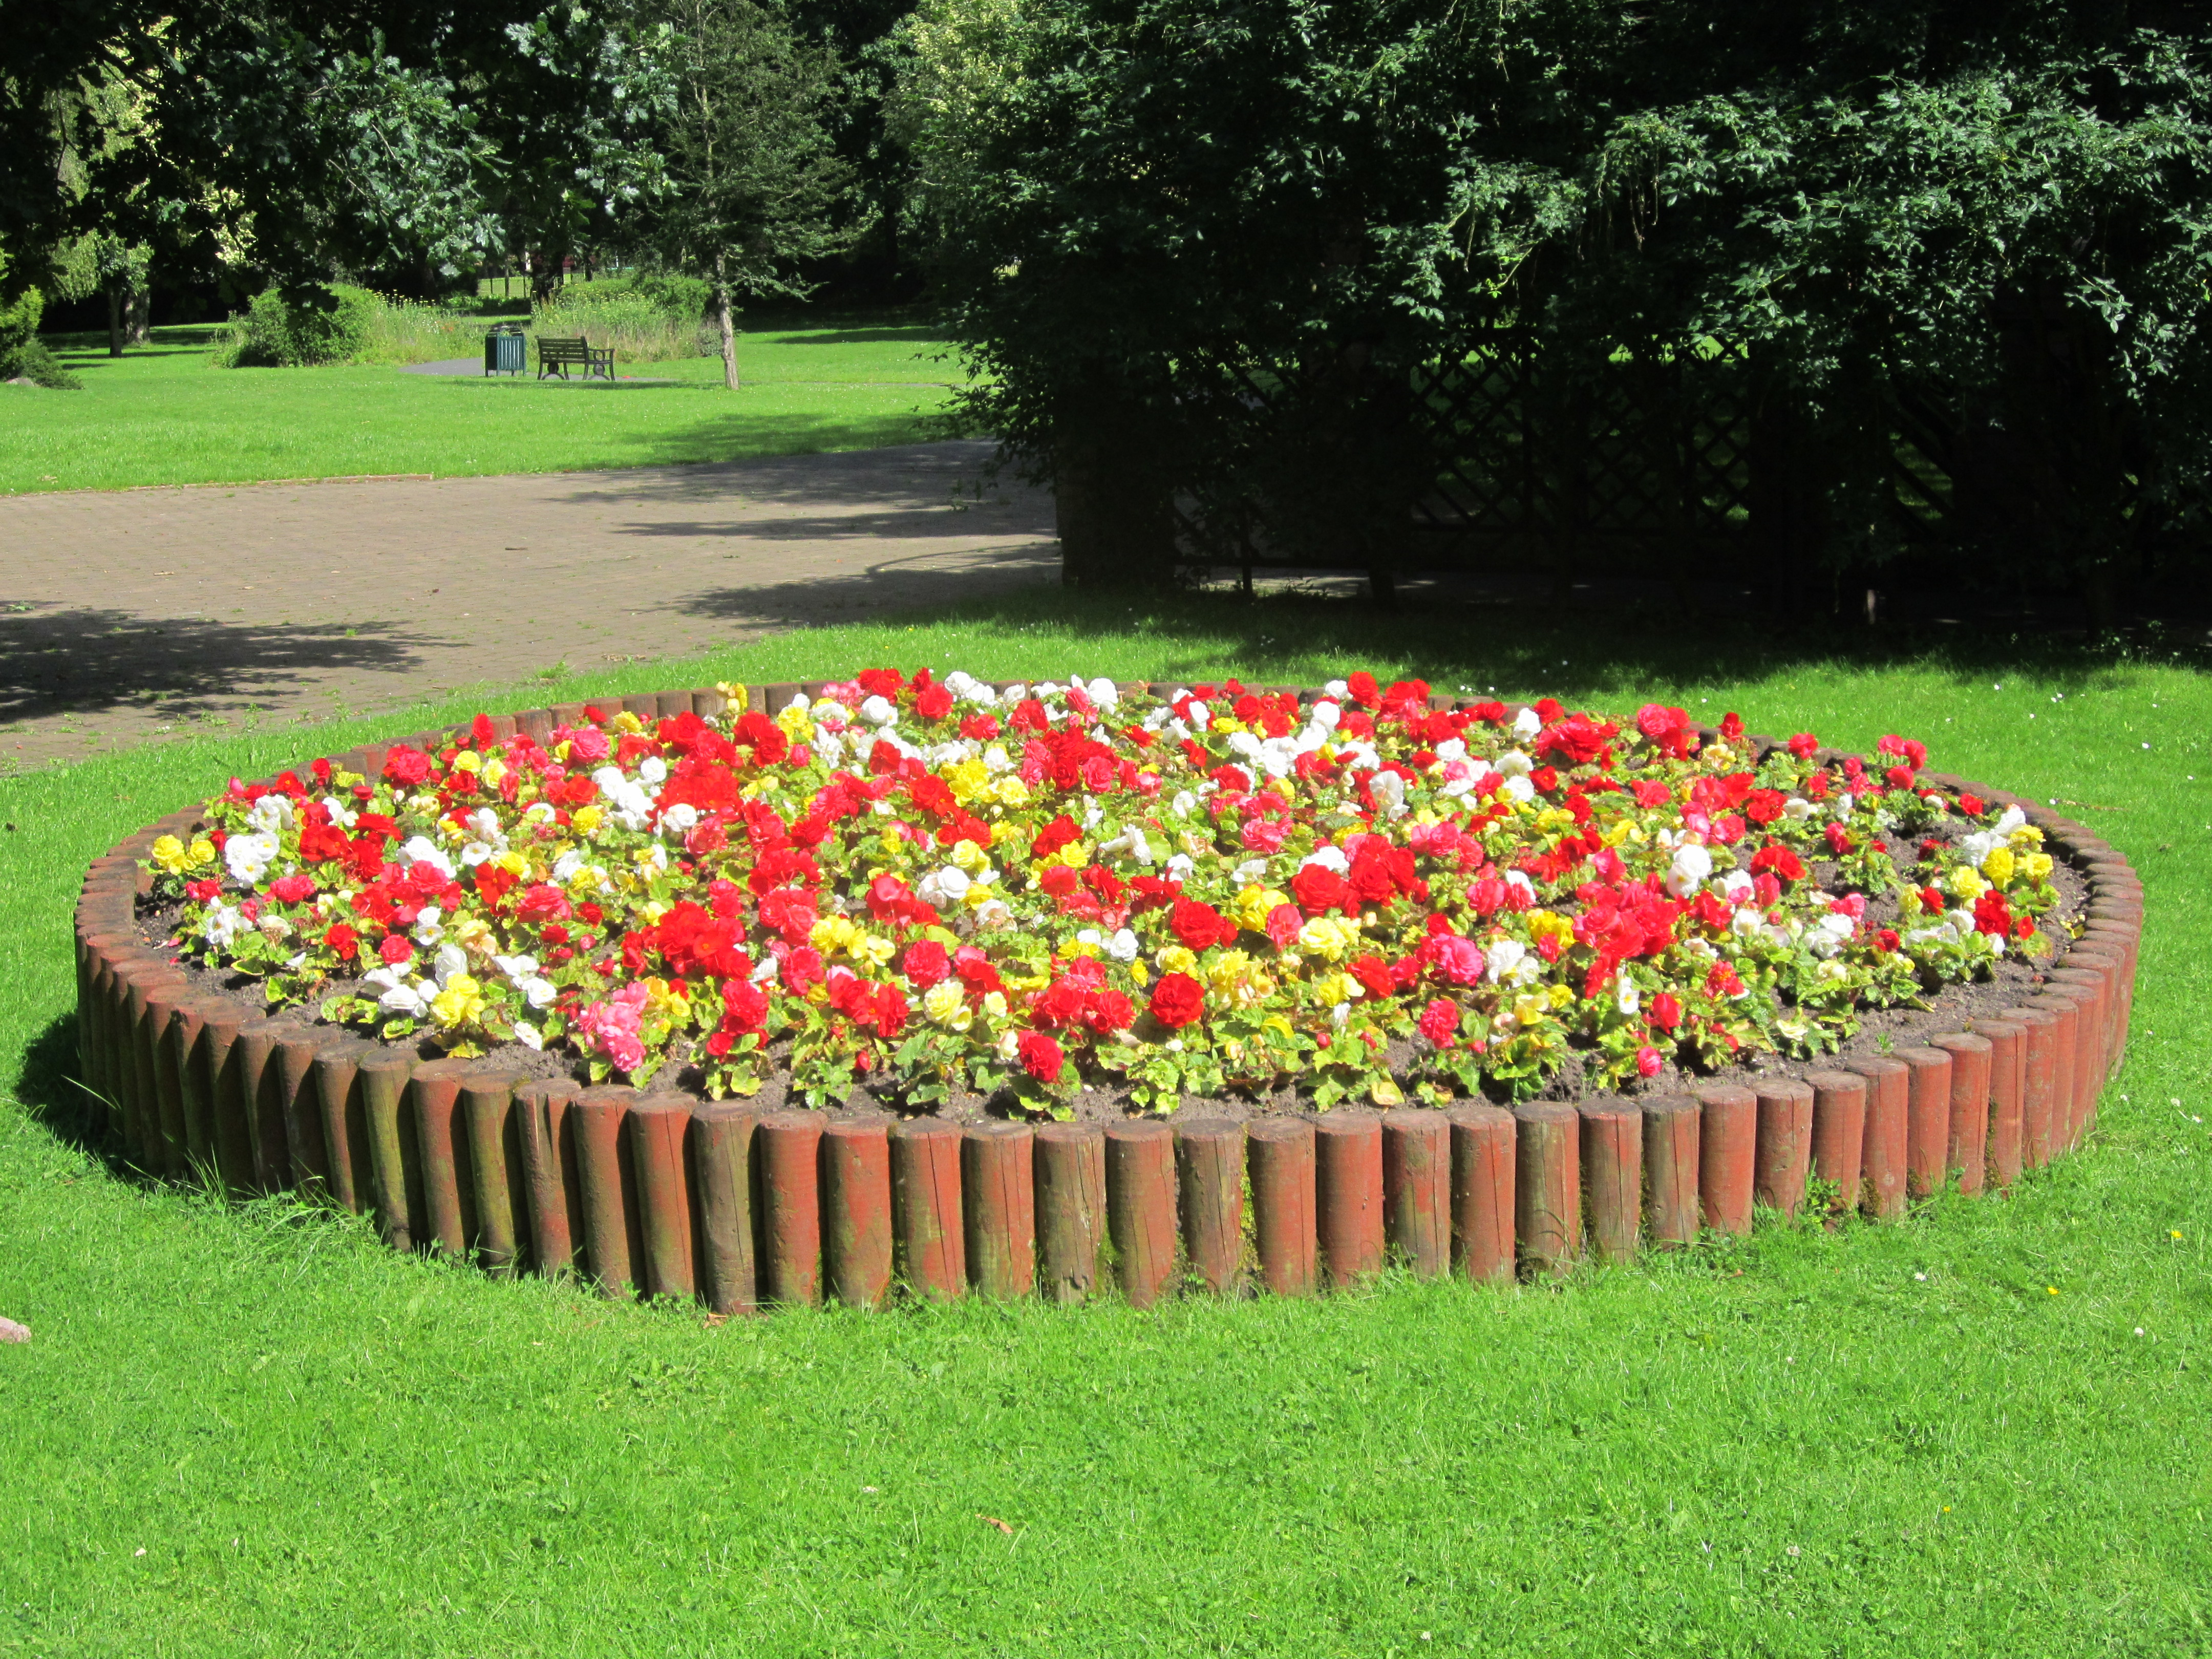 File:Flowerbed at St Chad's Gardens, Kirkby.JPG - Wikimedia Commons